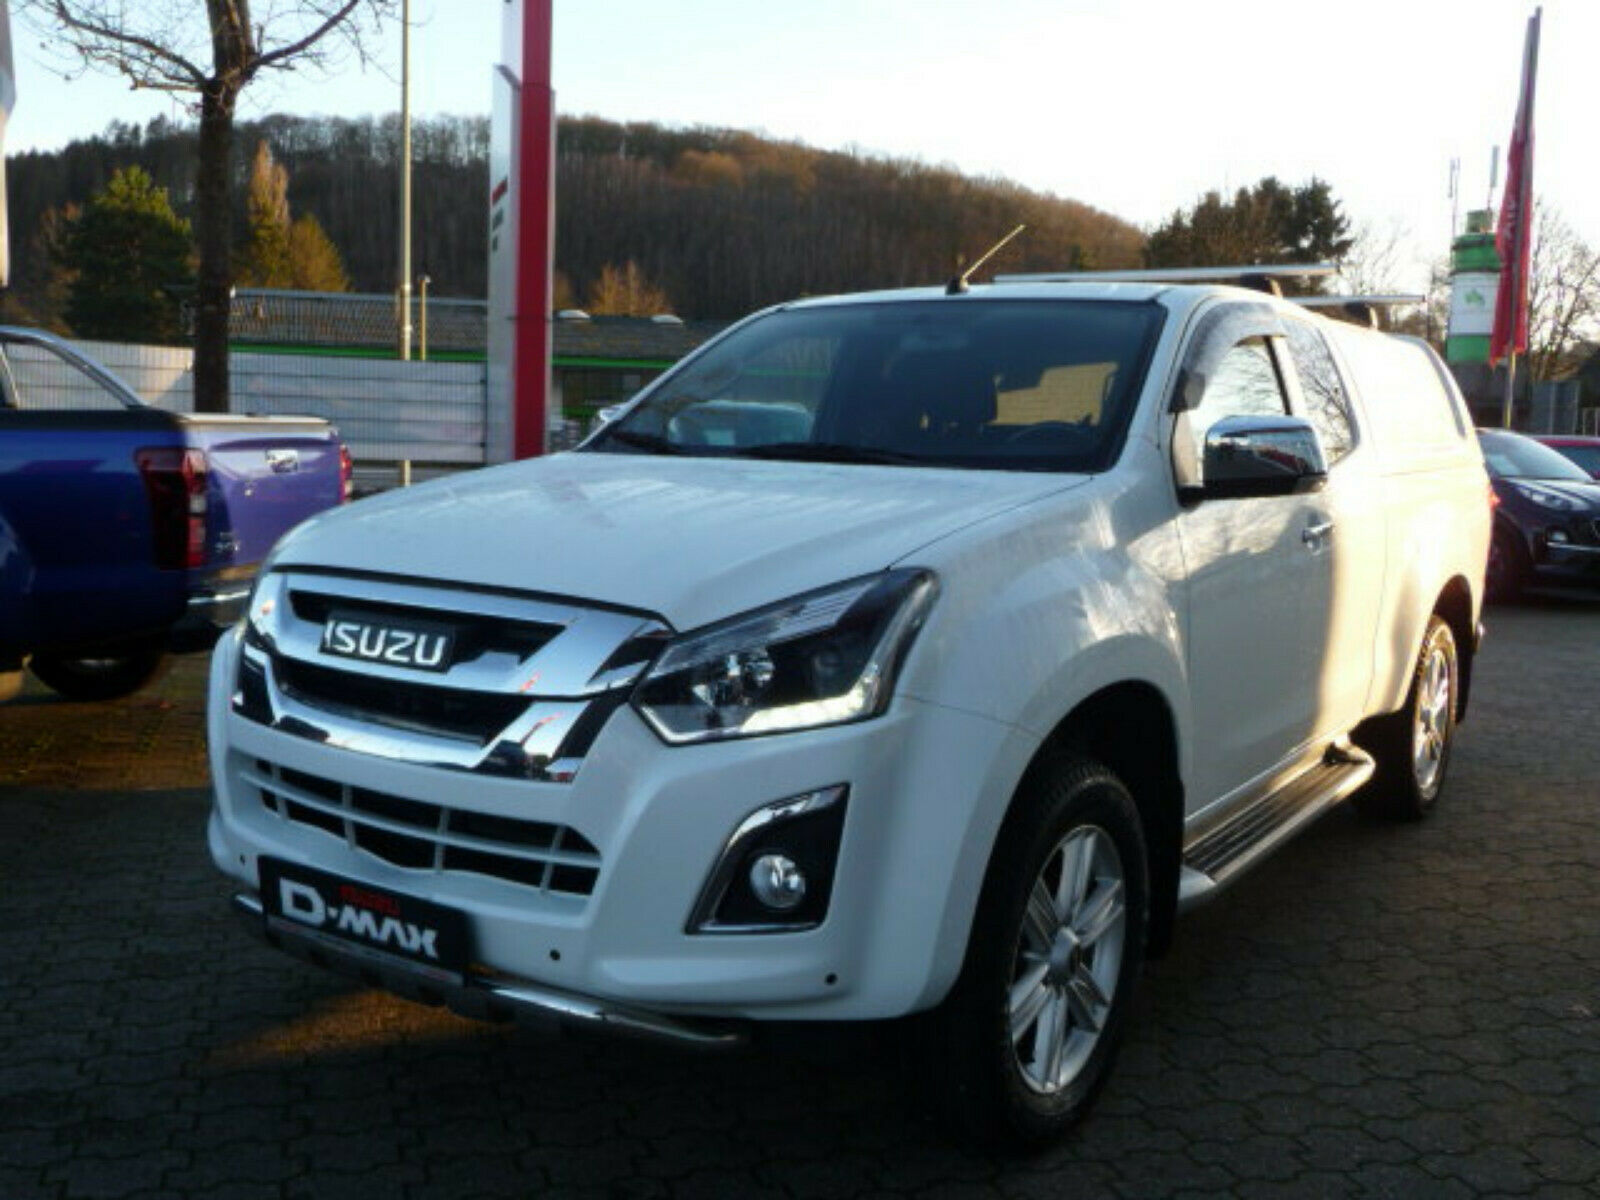 ISUZU D-Max Space Cab AT Custom Navi Klima AHK Euro6